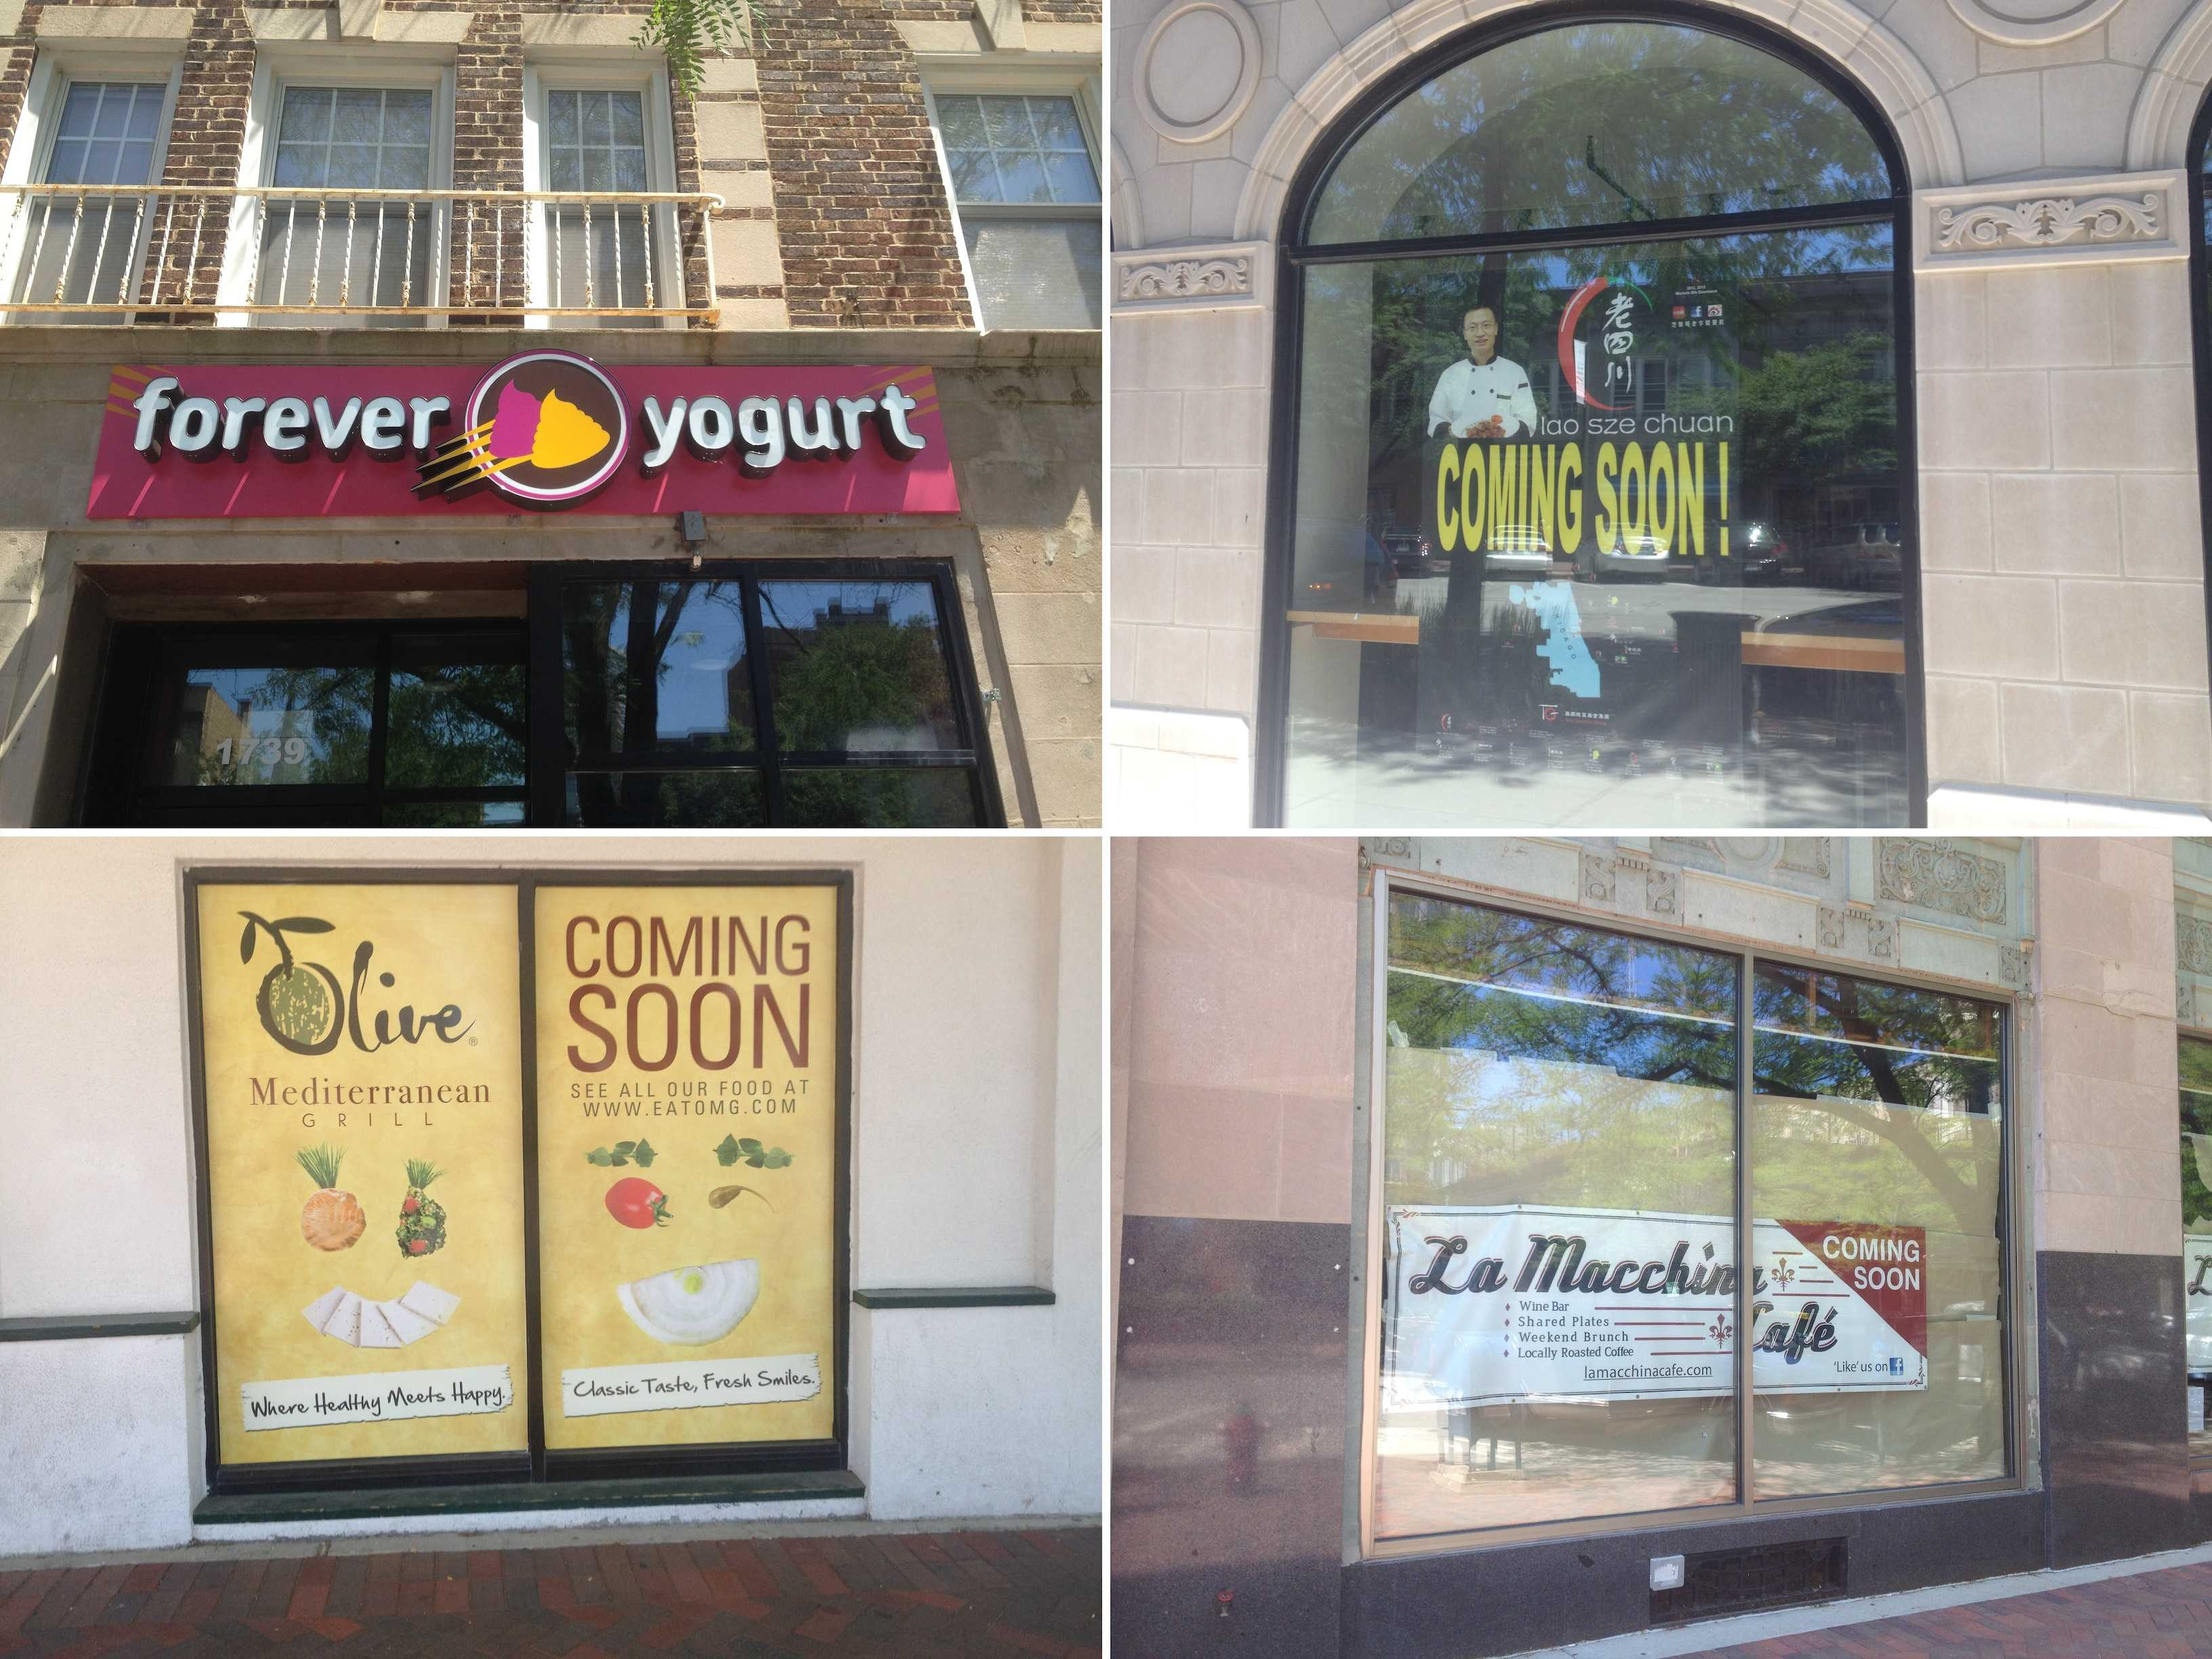 Forever Yogurt, Lao Sze Chuan, Olive Mediterranean Grill and La Macchina Cafe are all opening this summer in downtown Evanston. The popular Chicago eatery Farmhouse opened its first location in Evanston last week.